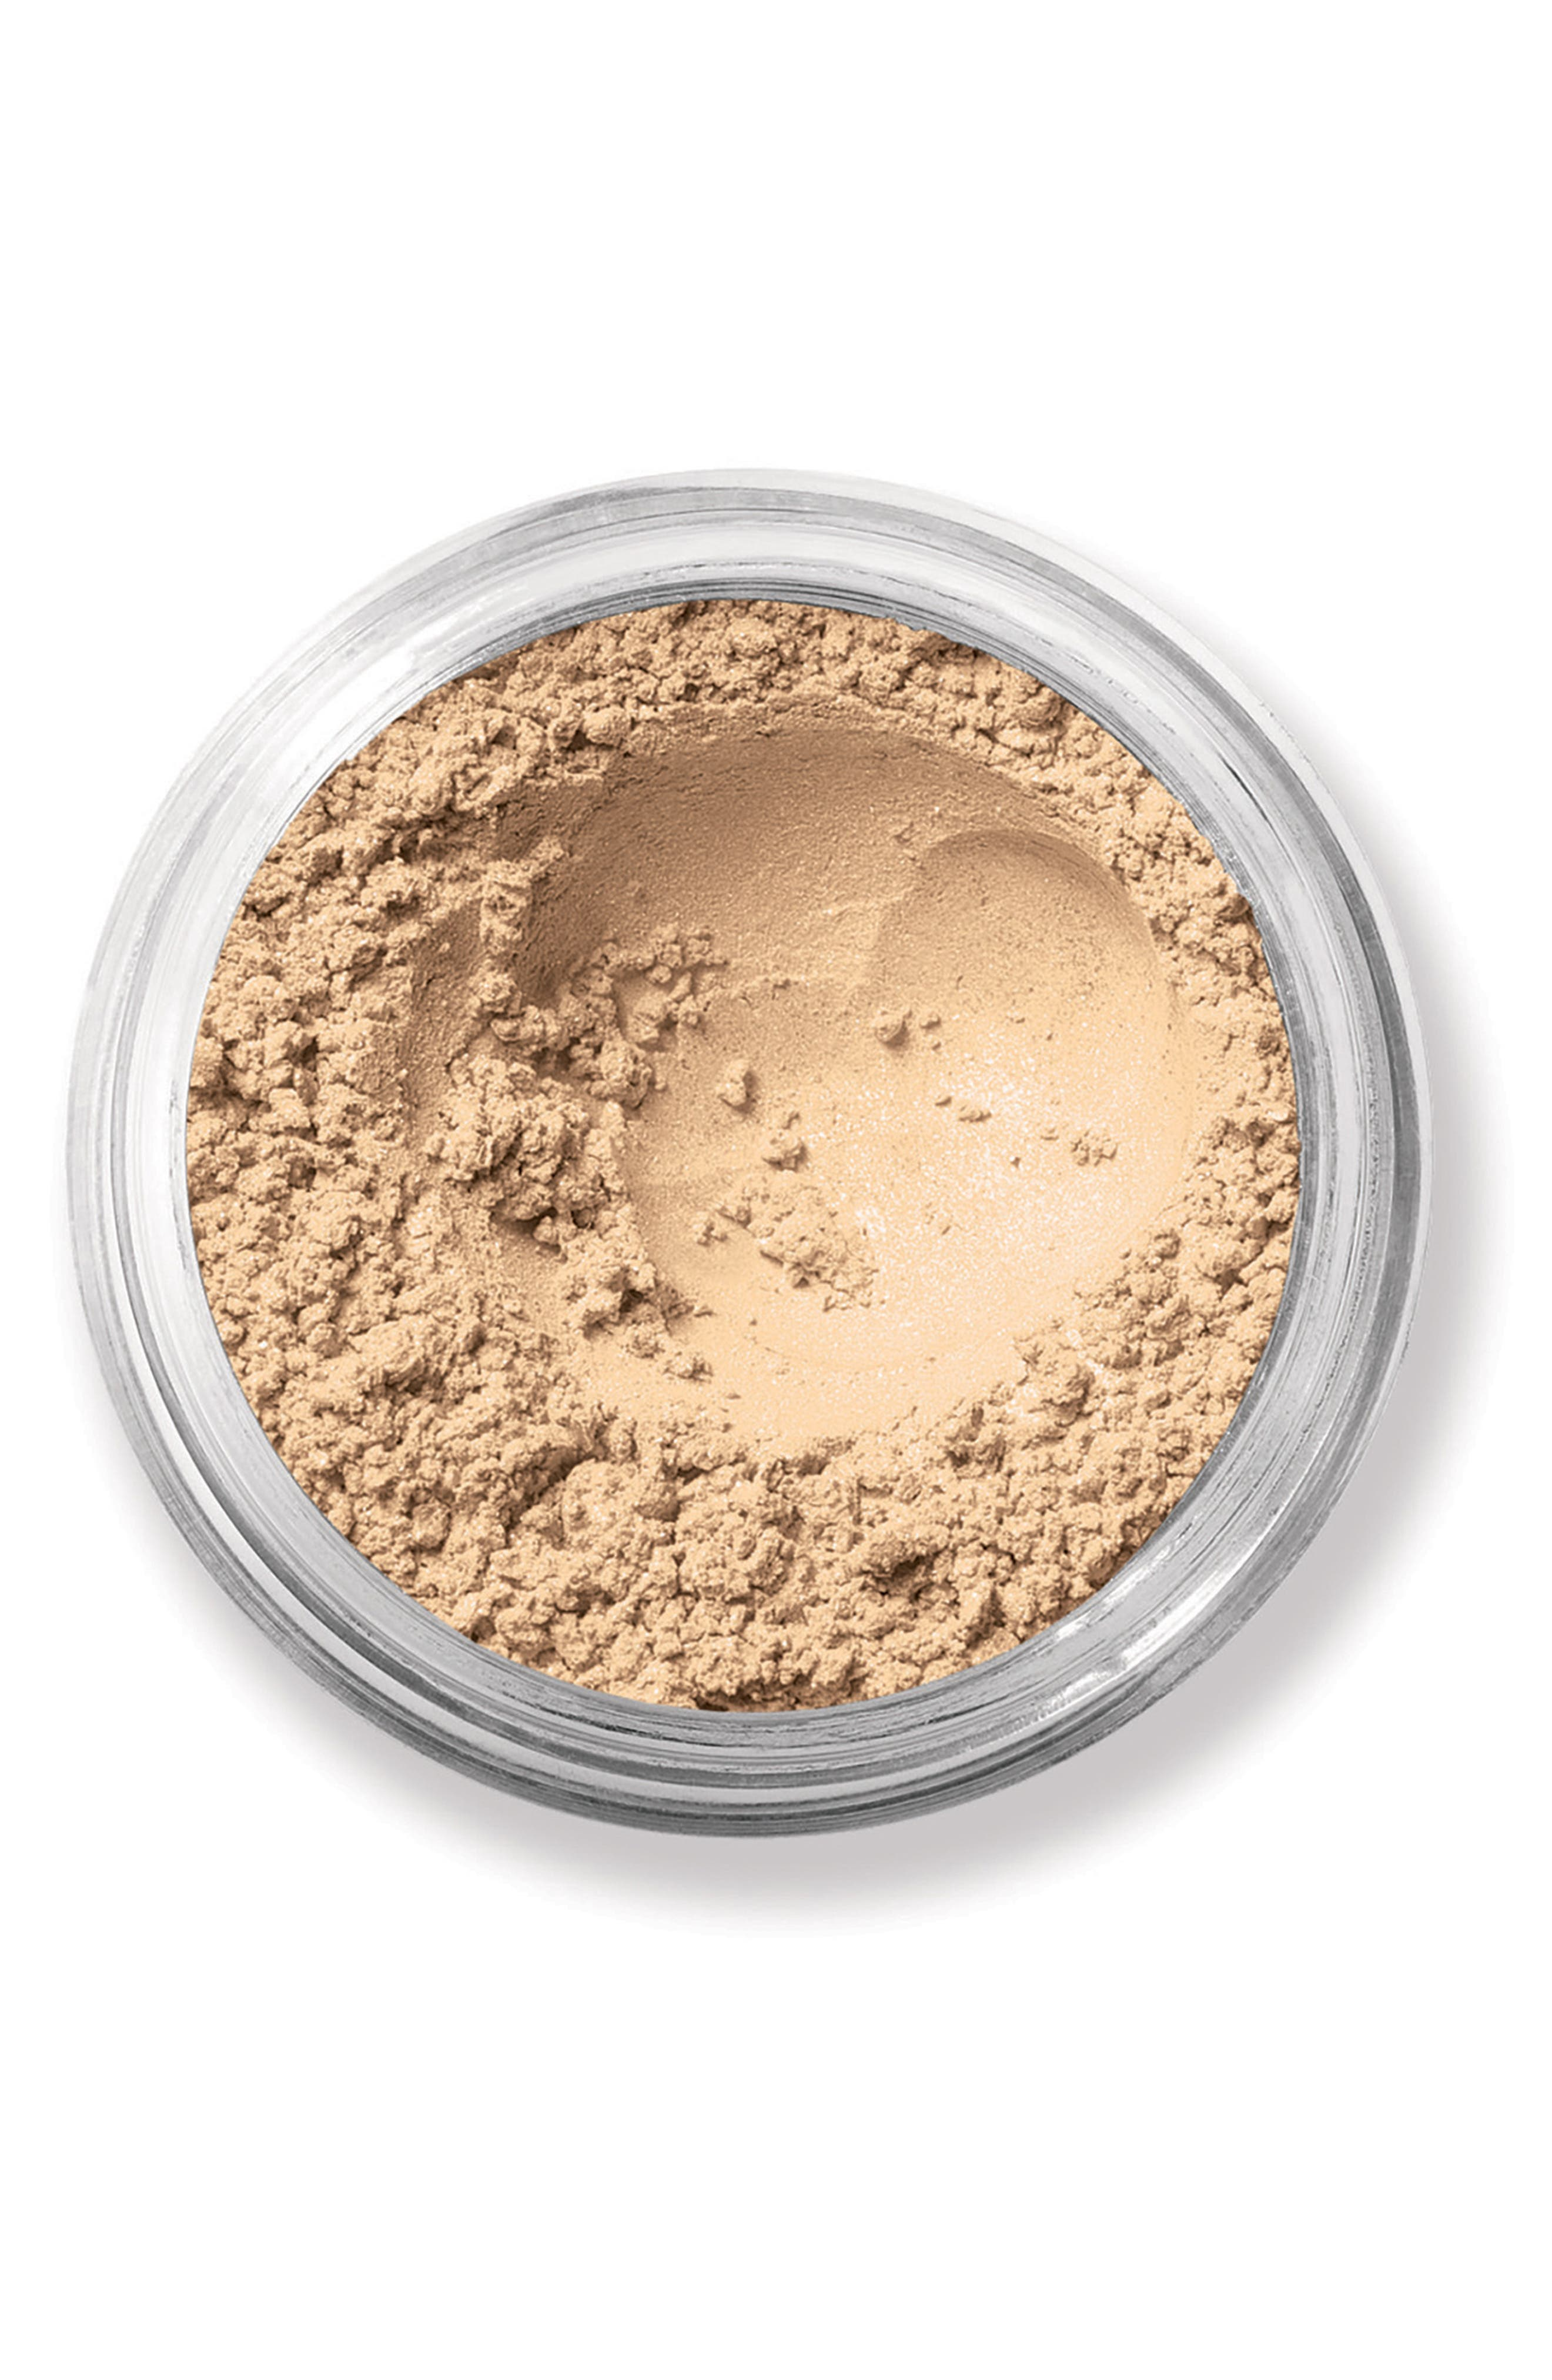 Bareminerals Well Rested Shadow Base Spf 20